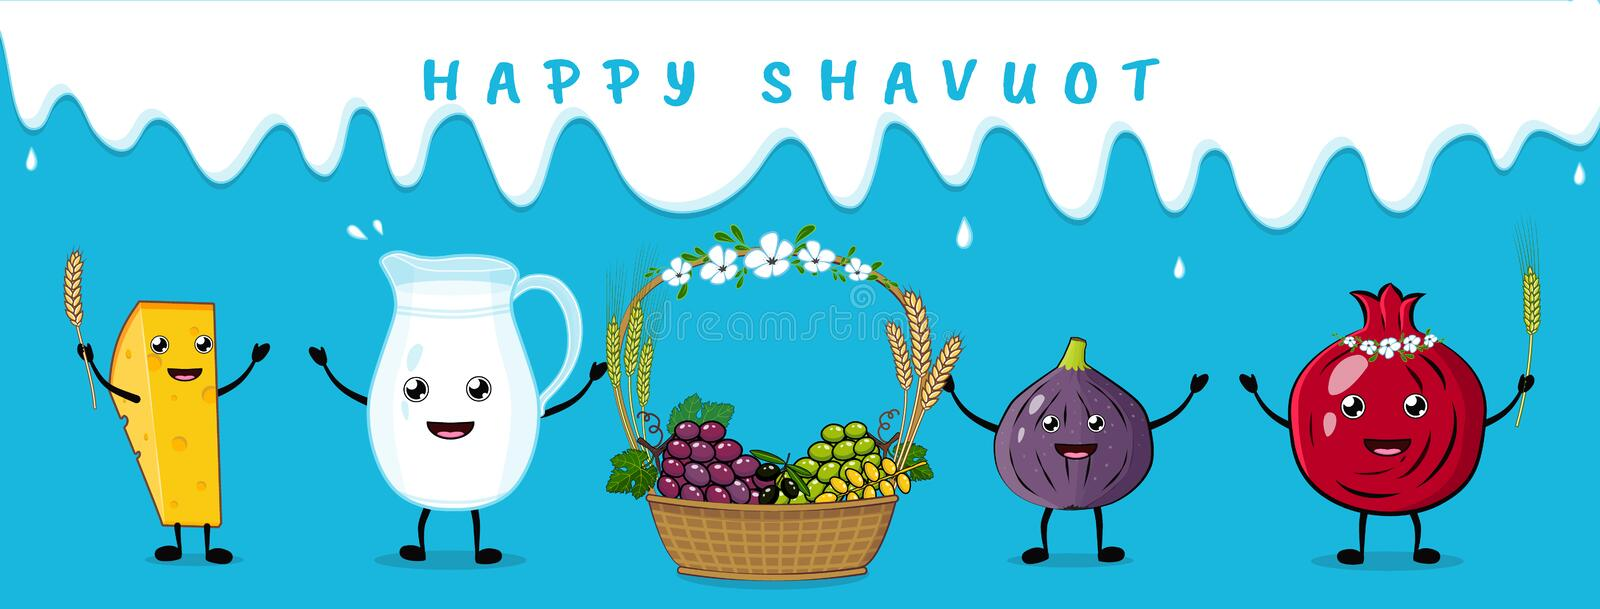 Shavuot banner with milk, cheese and traditional fruits funny cartoon characters. Vector illustration royalty free illustration